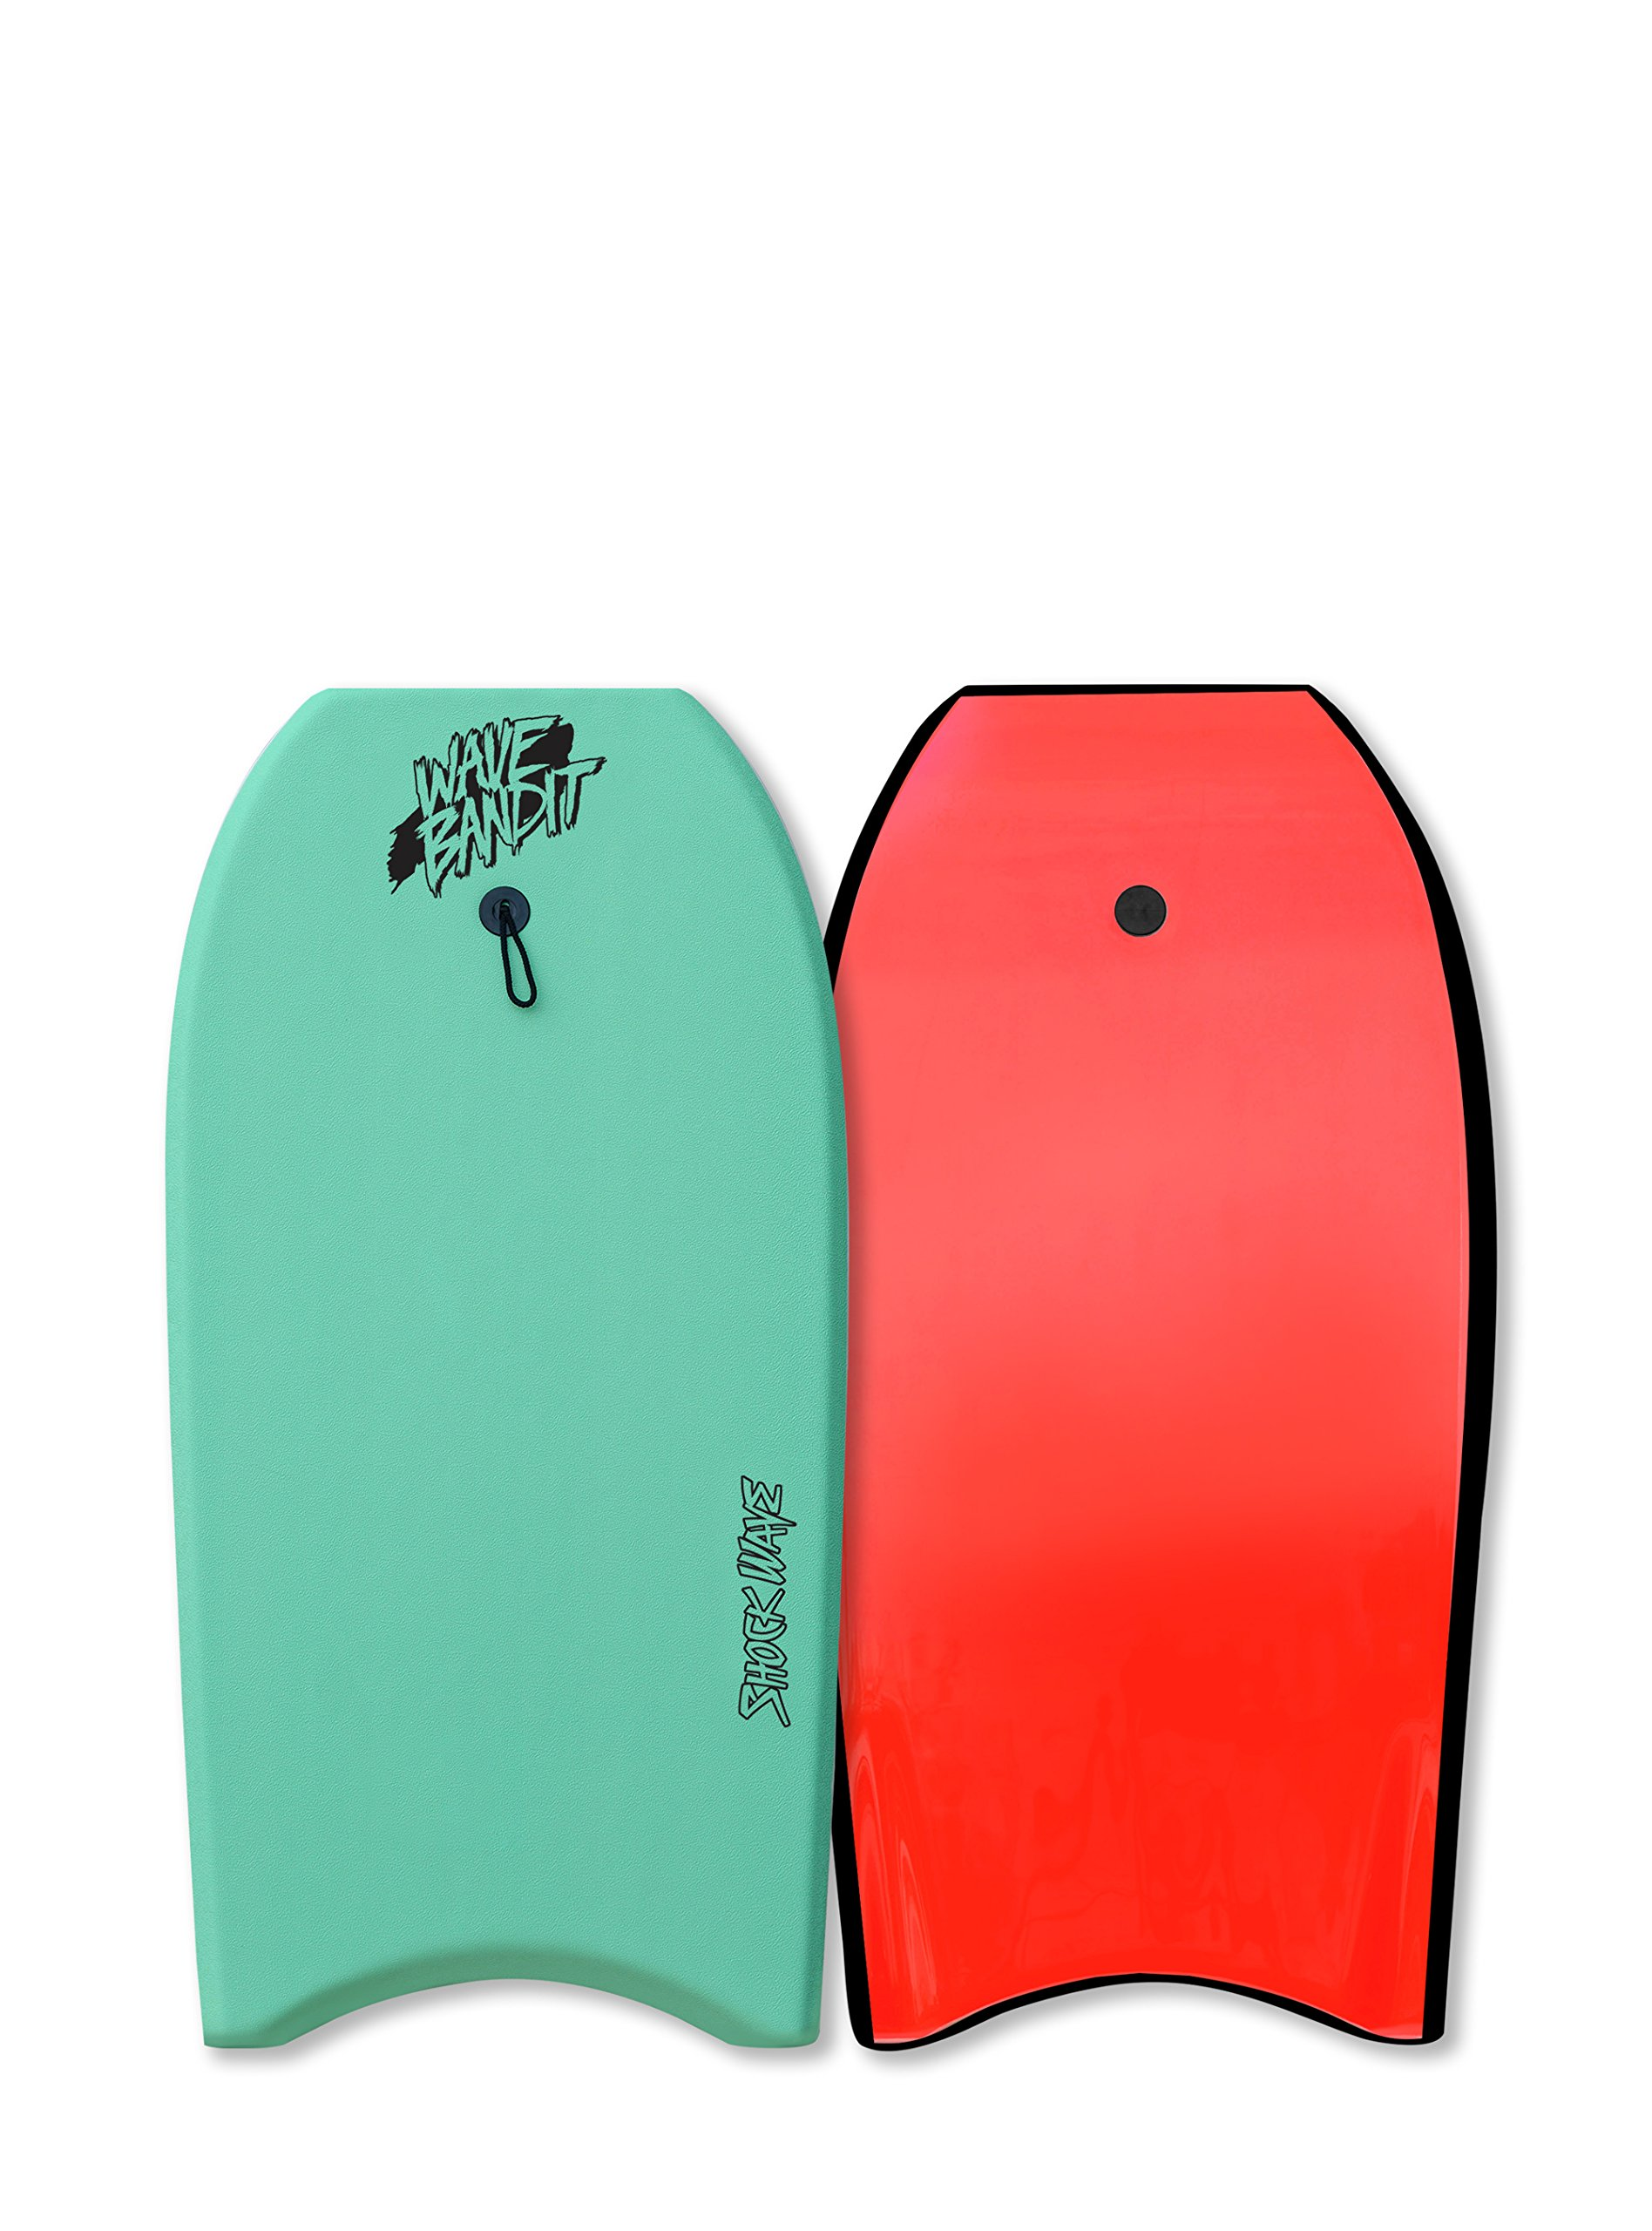 Catch Surf Wave Bandit Shockwave 42'' Short Surf Board, Mint